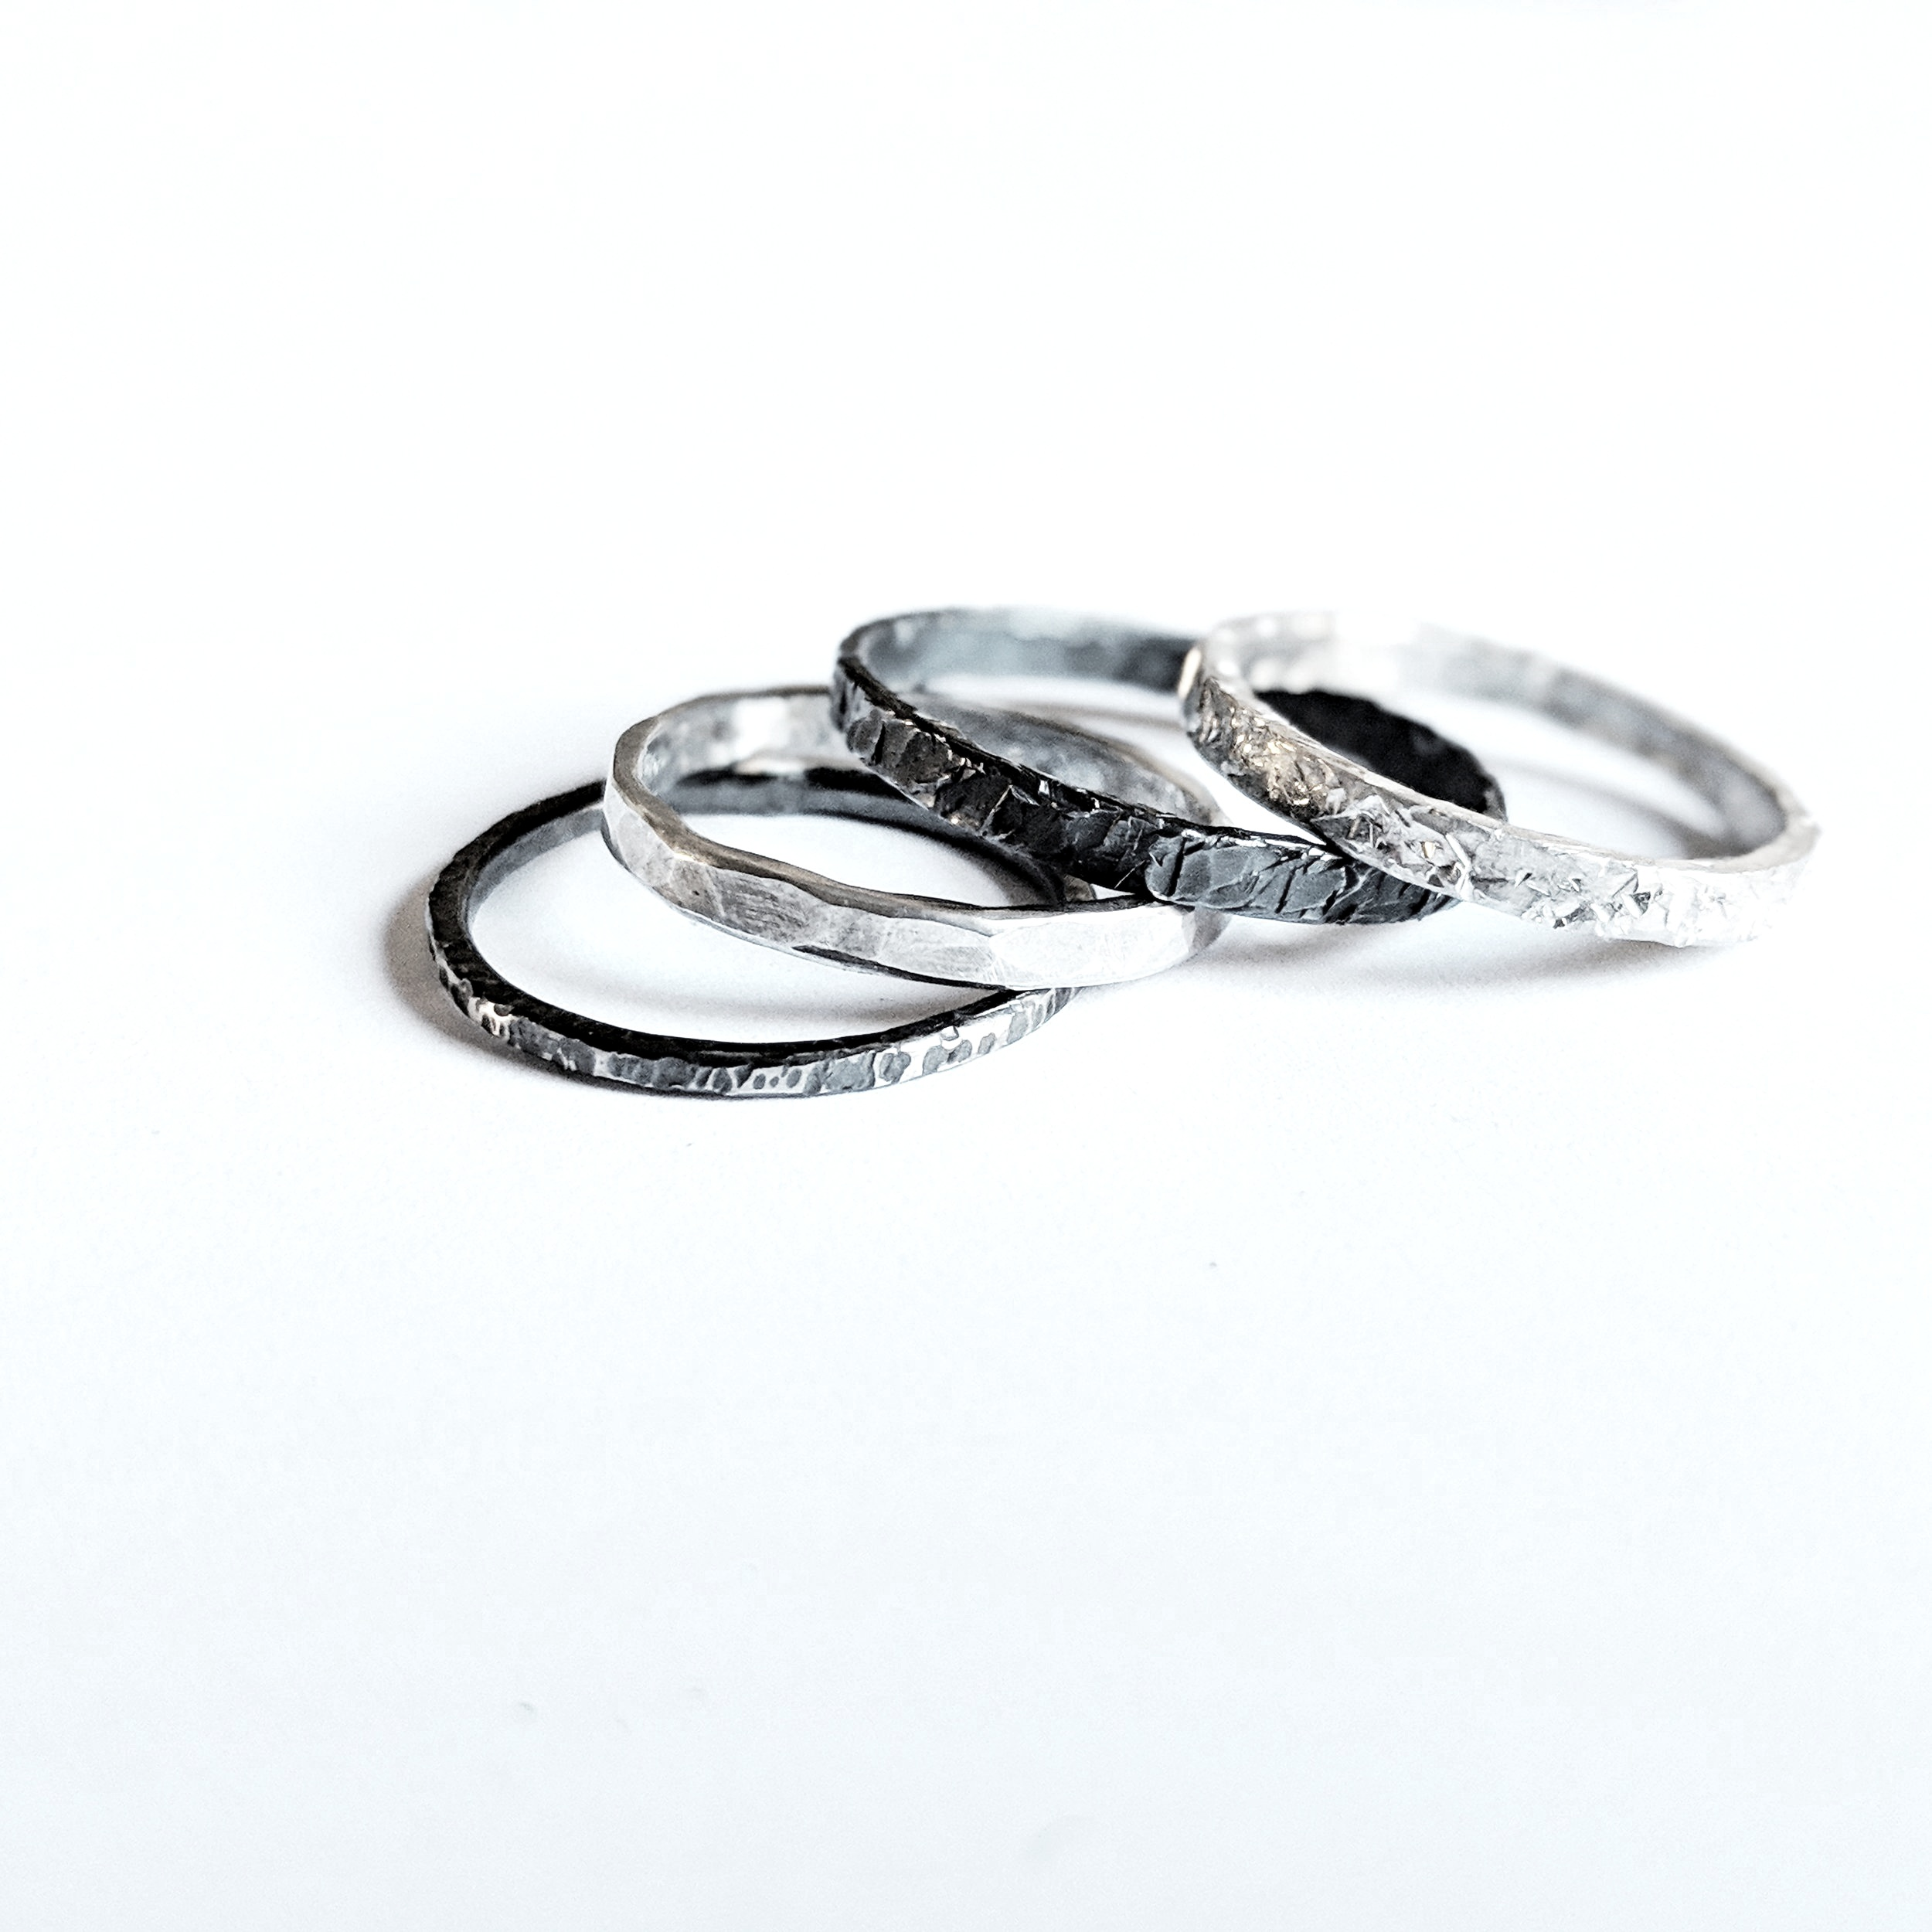 kirsten+manzi+jewellery+-+textured+silver+and+oxisised+stack+rings+.jpg